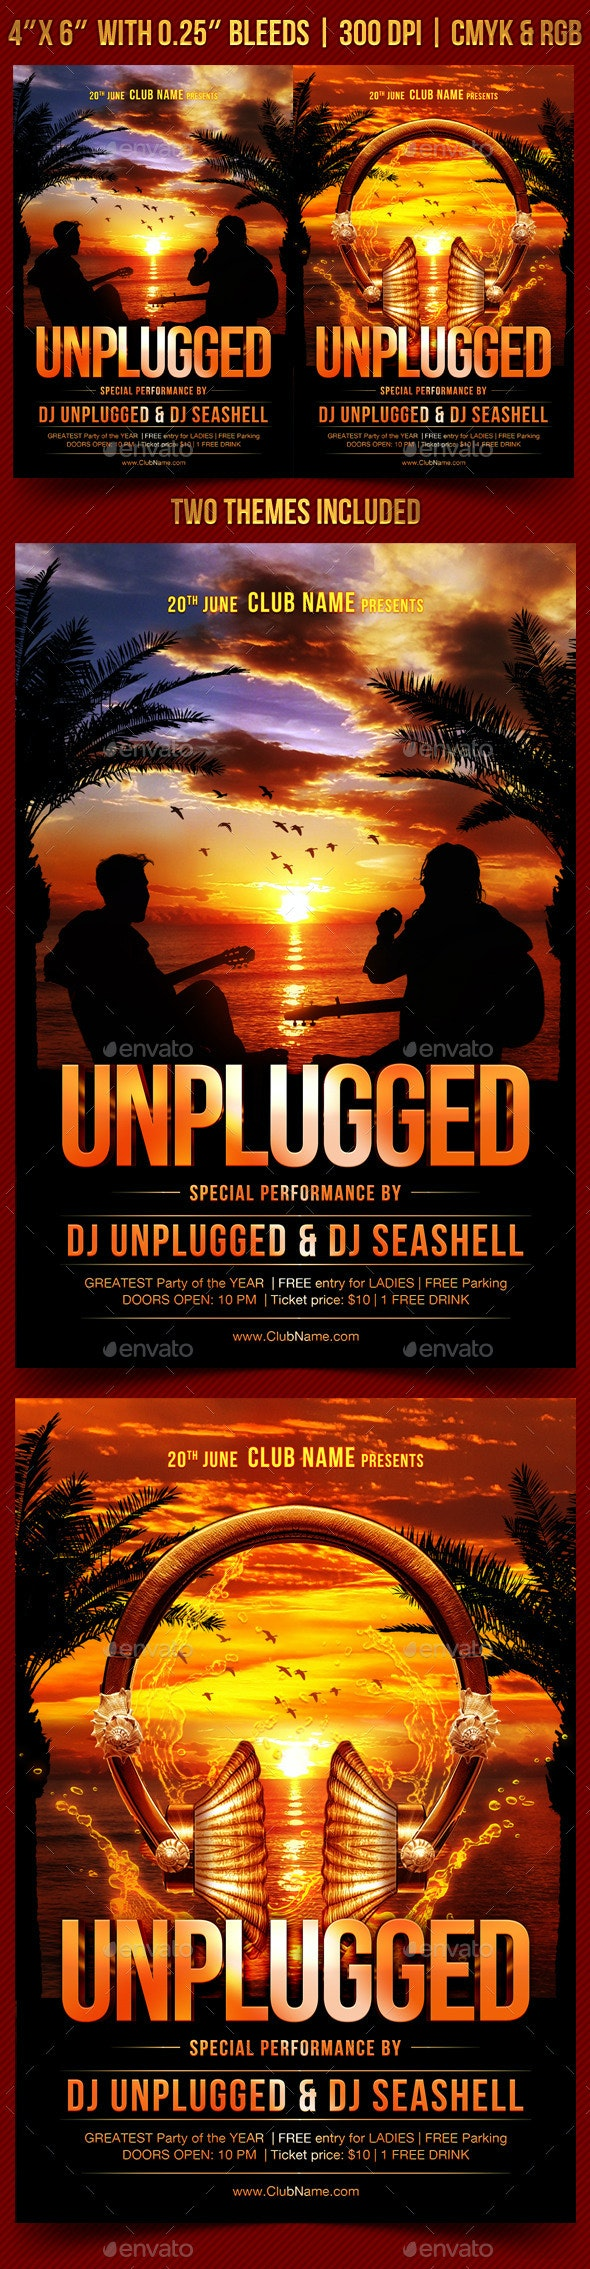 Unplugged Flyer Template - Clubs & Parties Events